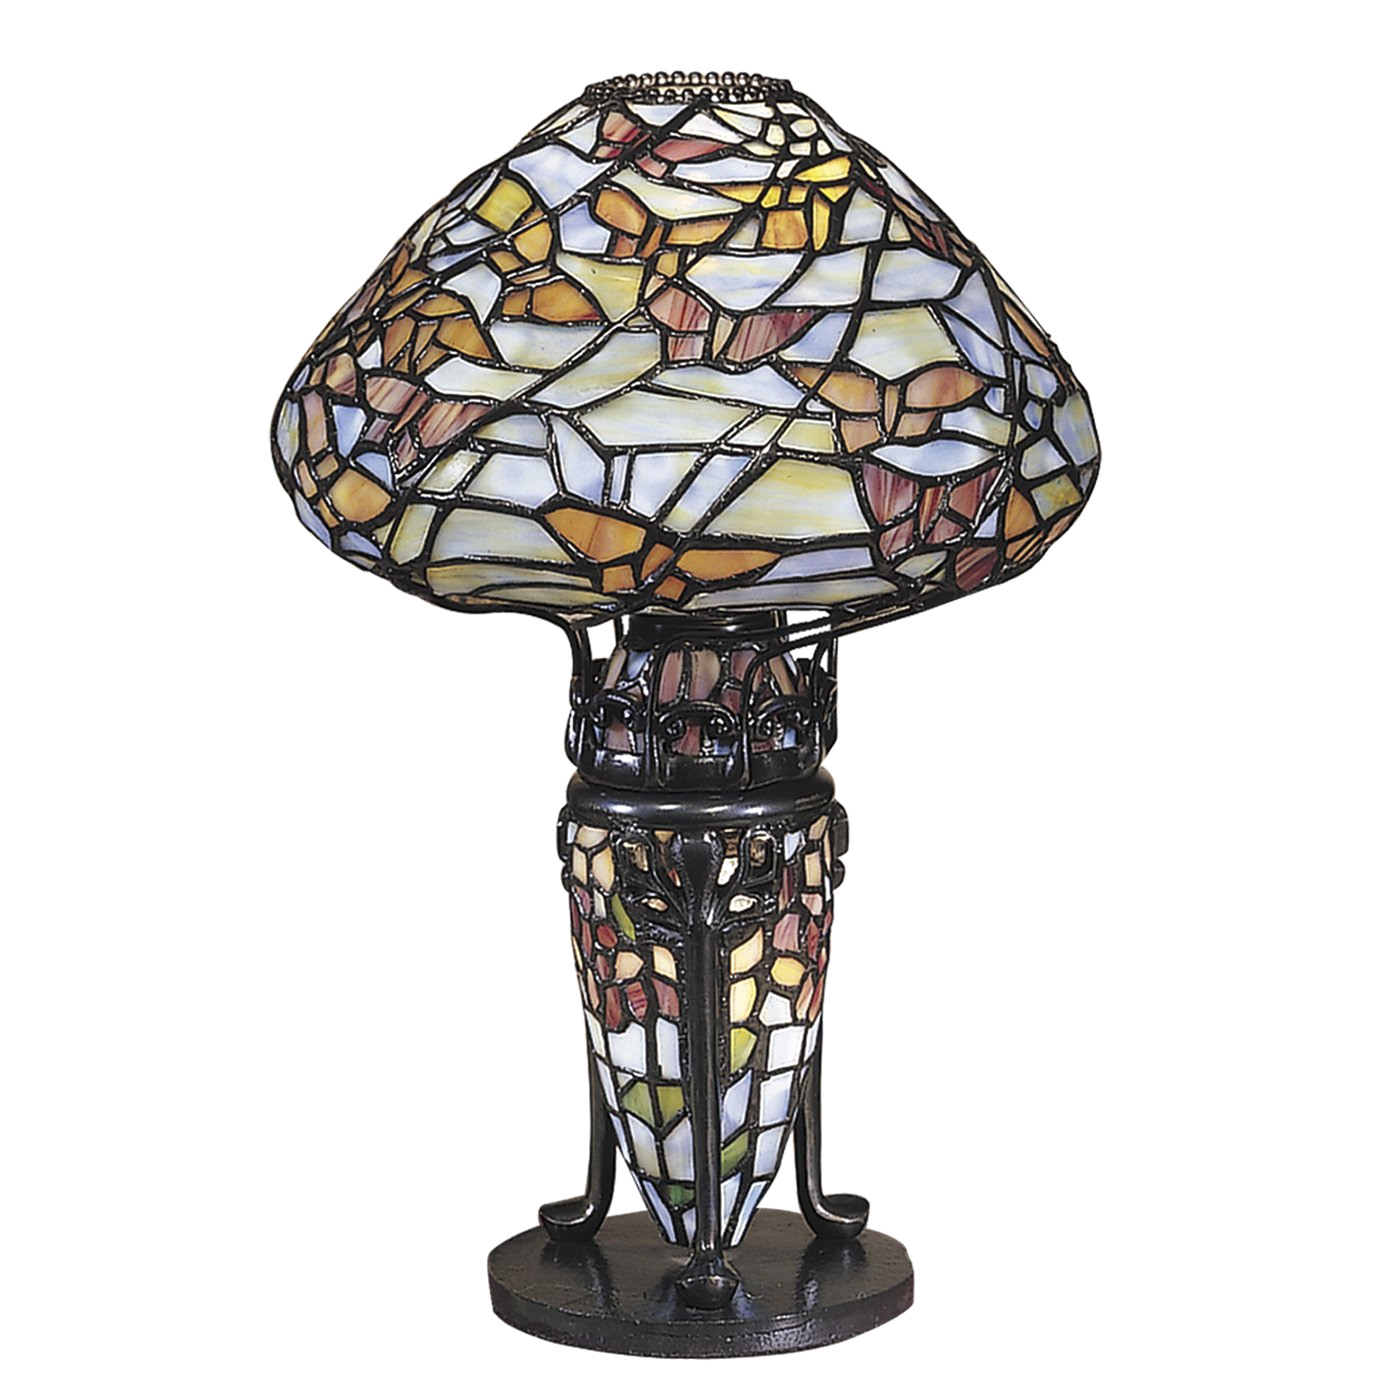 wonderful tiffany accent table lamps from dale cavan awesome with papillon lamp antique target windsor chair sheesham and chairs coffee end tables bathroom decor ideas tiny corner